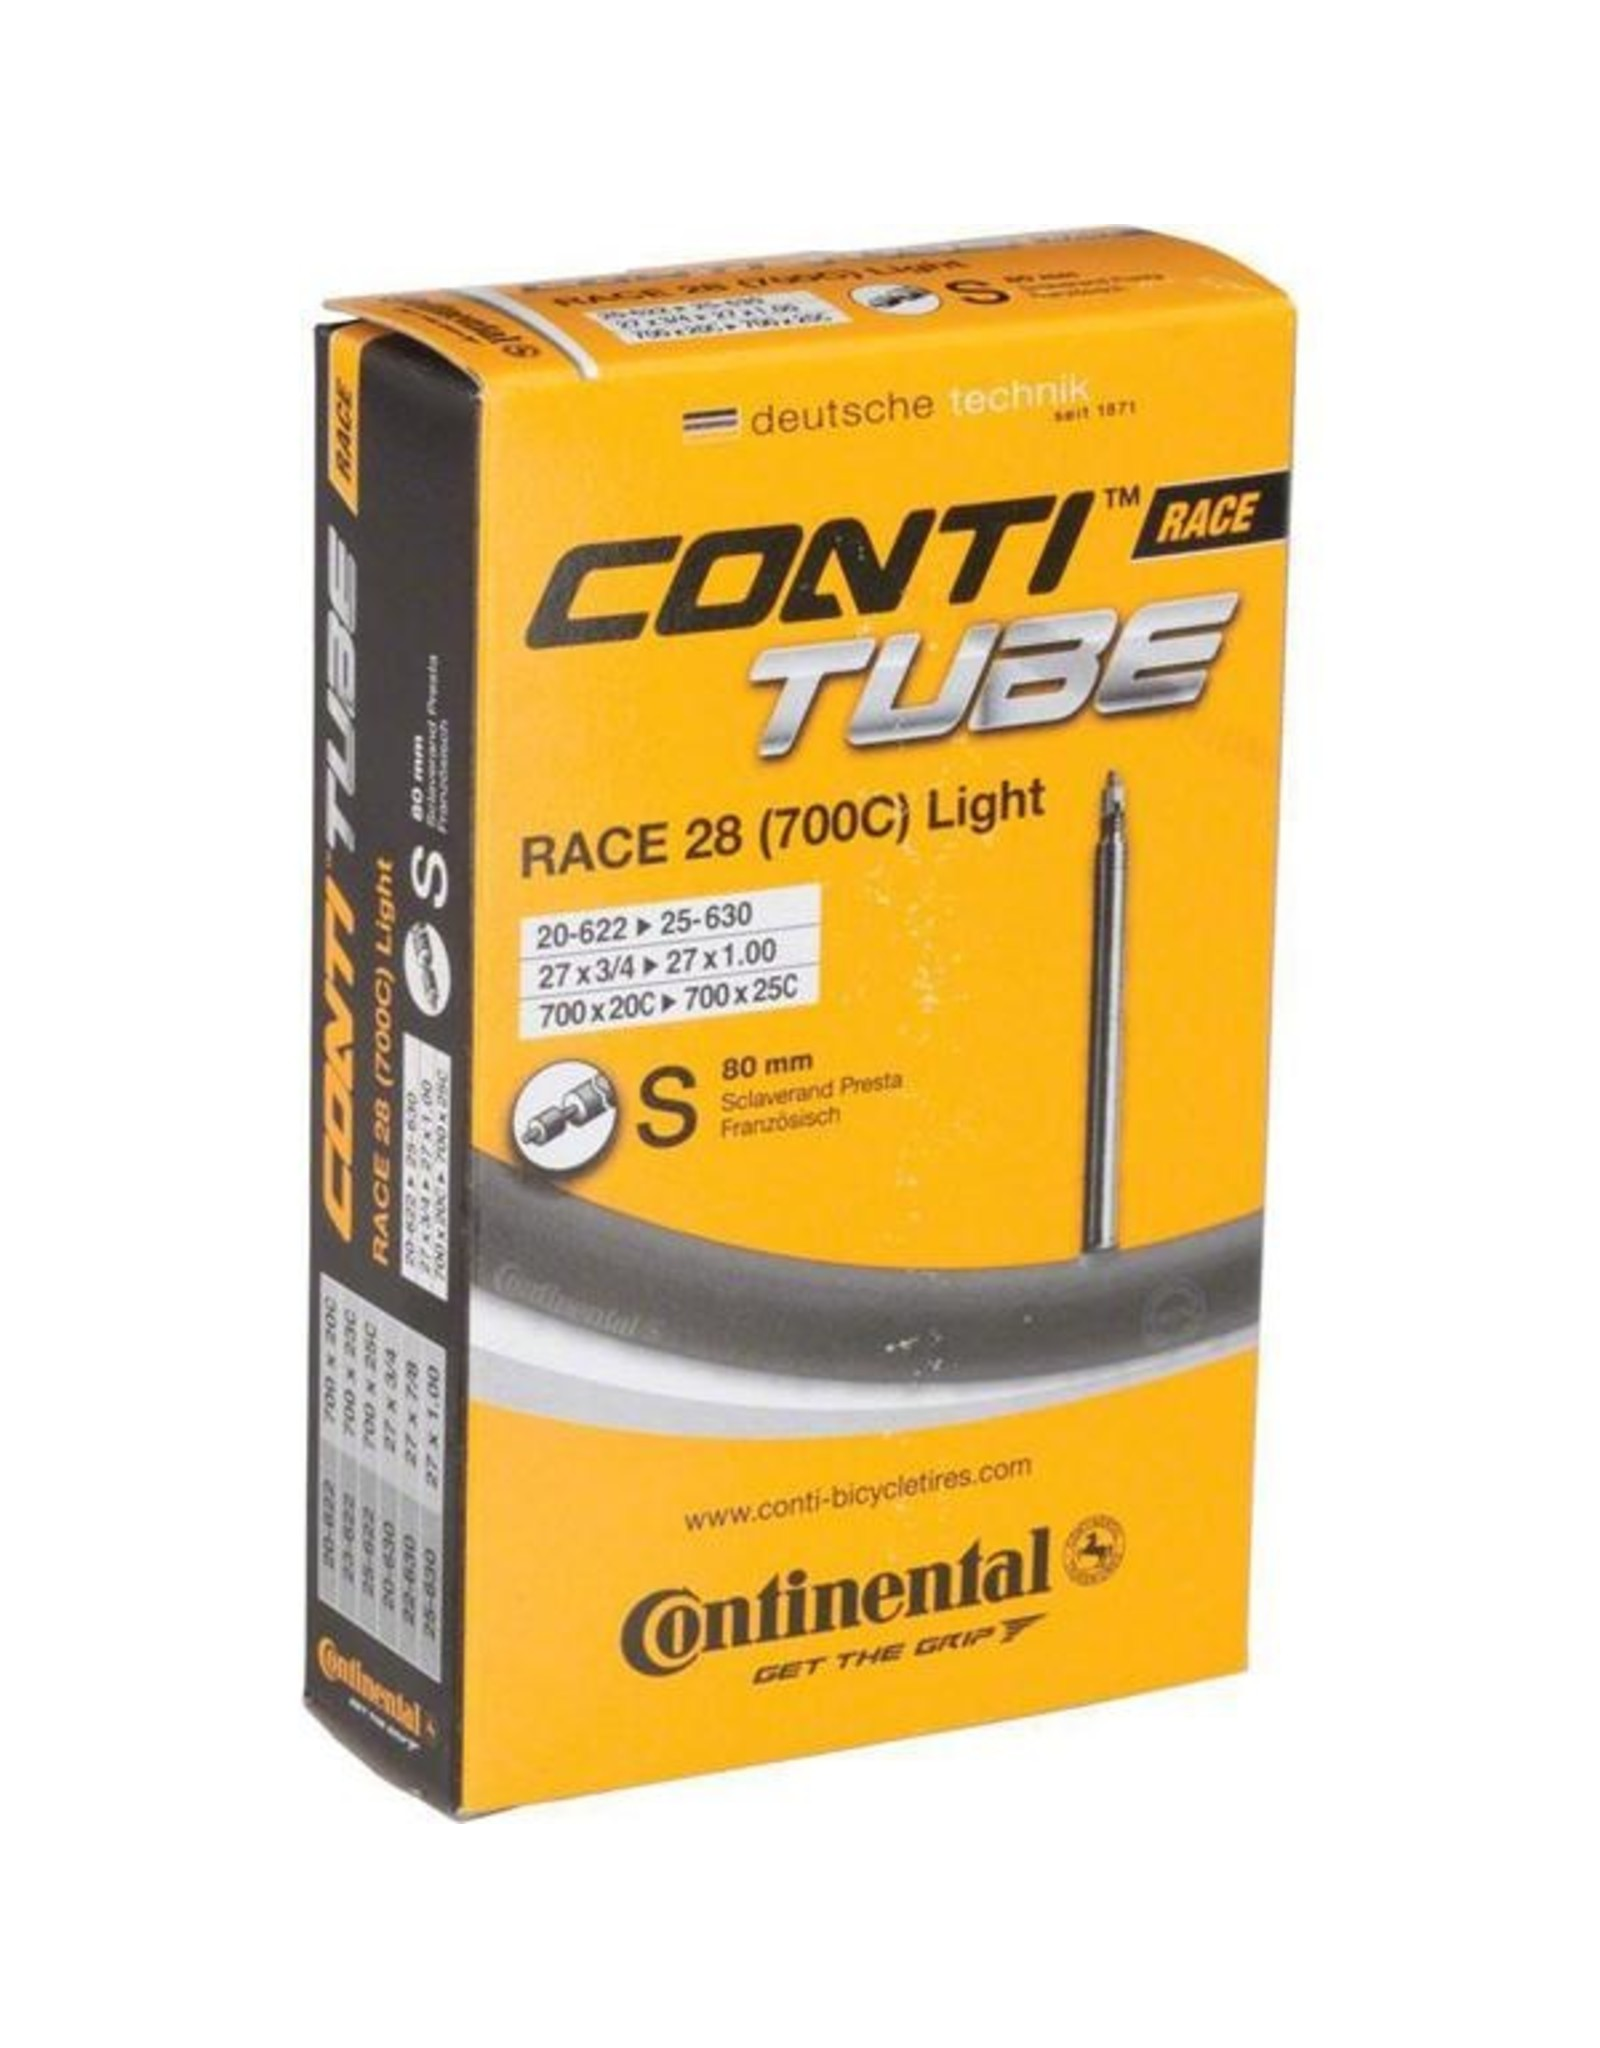 Continental Tubes 700 x 18-25 - PV 60mm